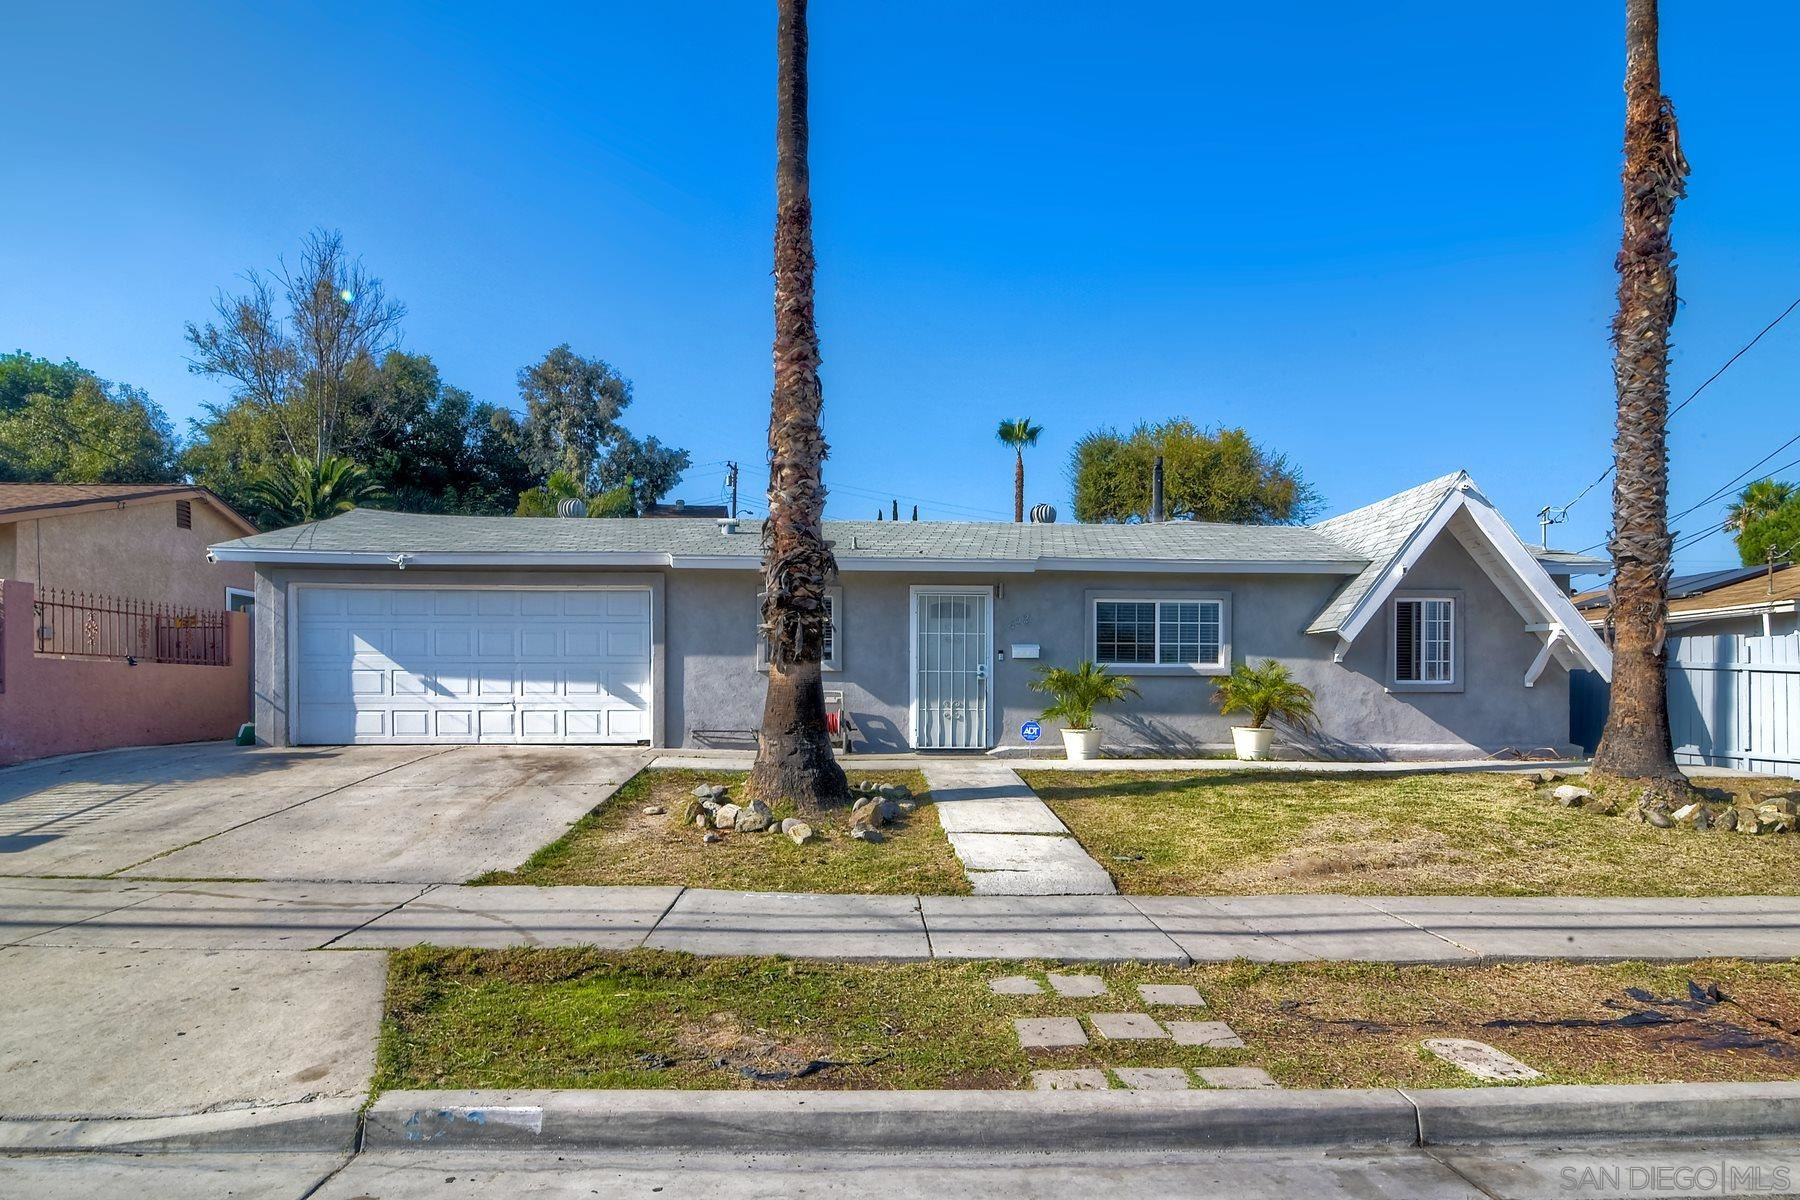 422 Osage St, Spring Valley, CA 91977 - MLS#: 200052306